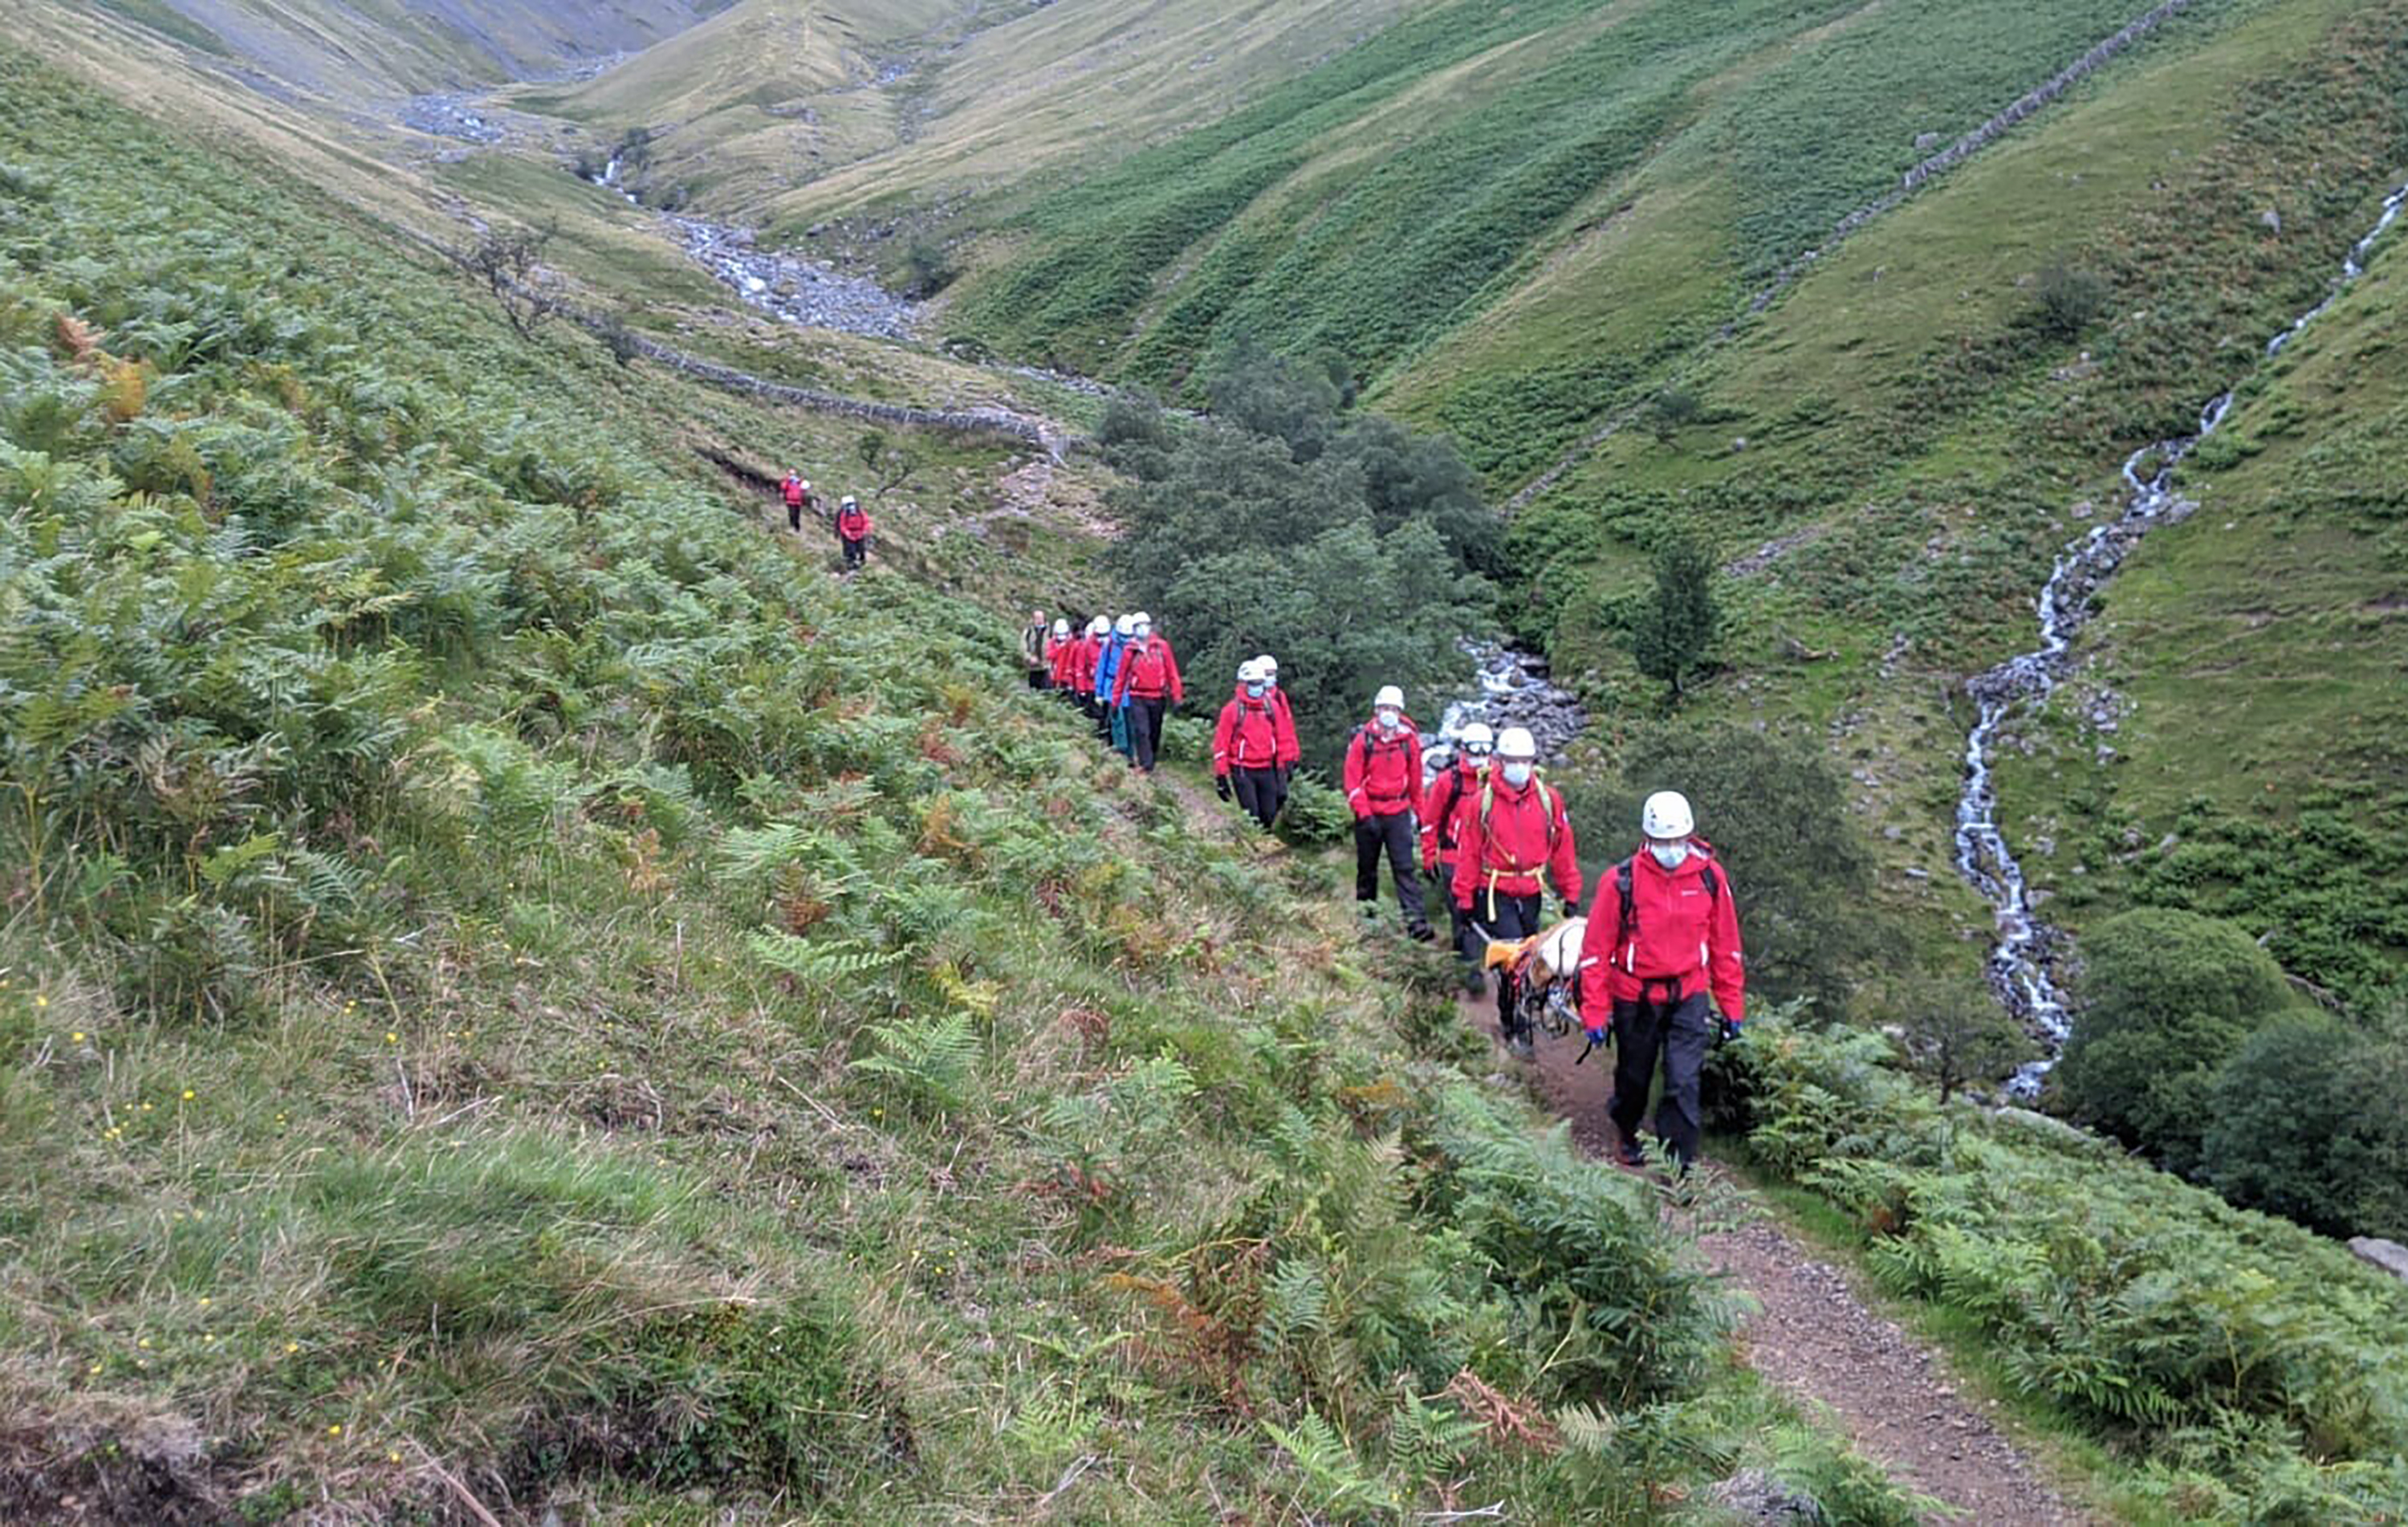 Volunteers from Wasdale mountain rescue team take turns to carry Diasy, a 121lb (55kg) St Bernard dog, from England's highest peak, Scafell Pike, on July 26, 2020.